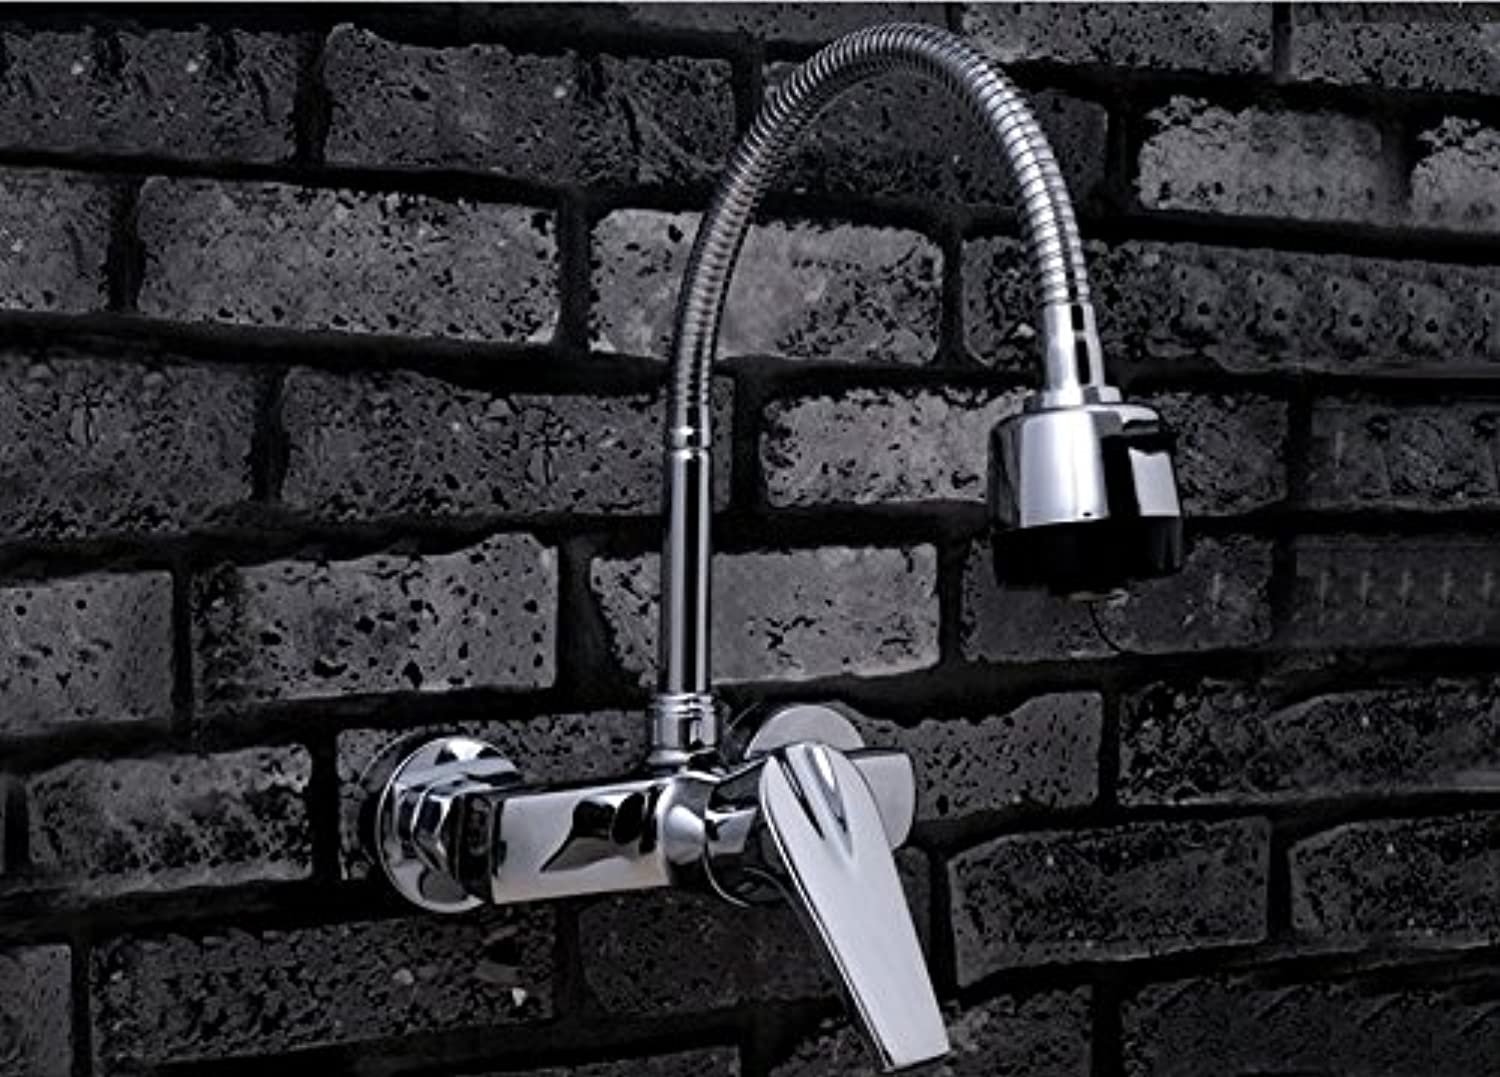 Diongrdk Copper Wall Type Hot and Cold Water Faucet, Double Hole Wash Basin Basin, Bathroom Balcony, Laundry Pool Swivel Tap.